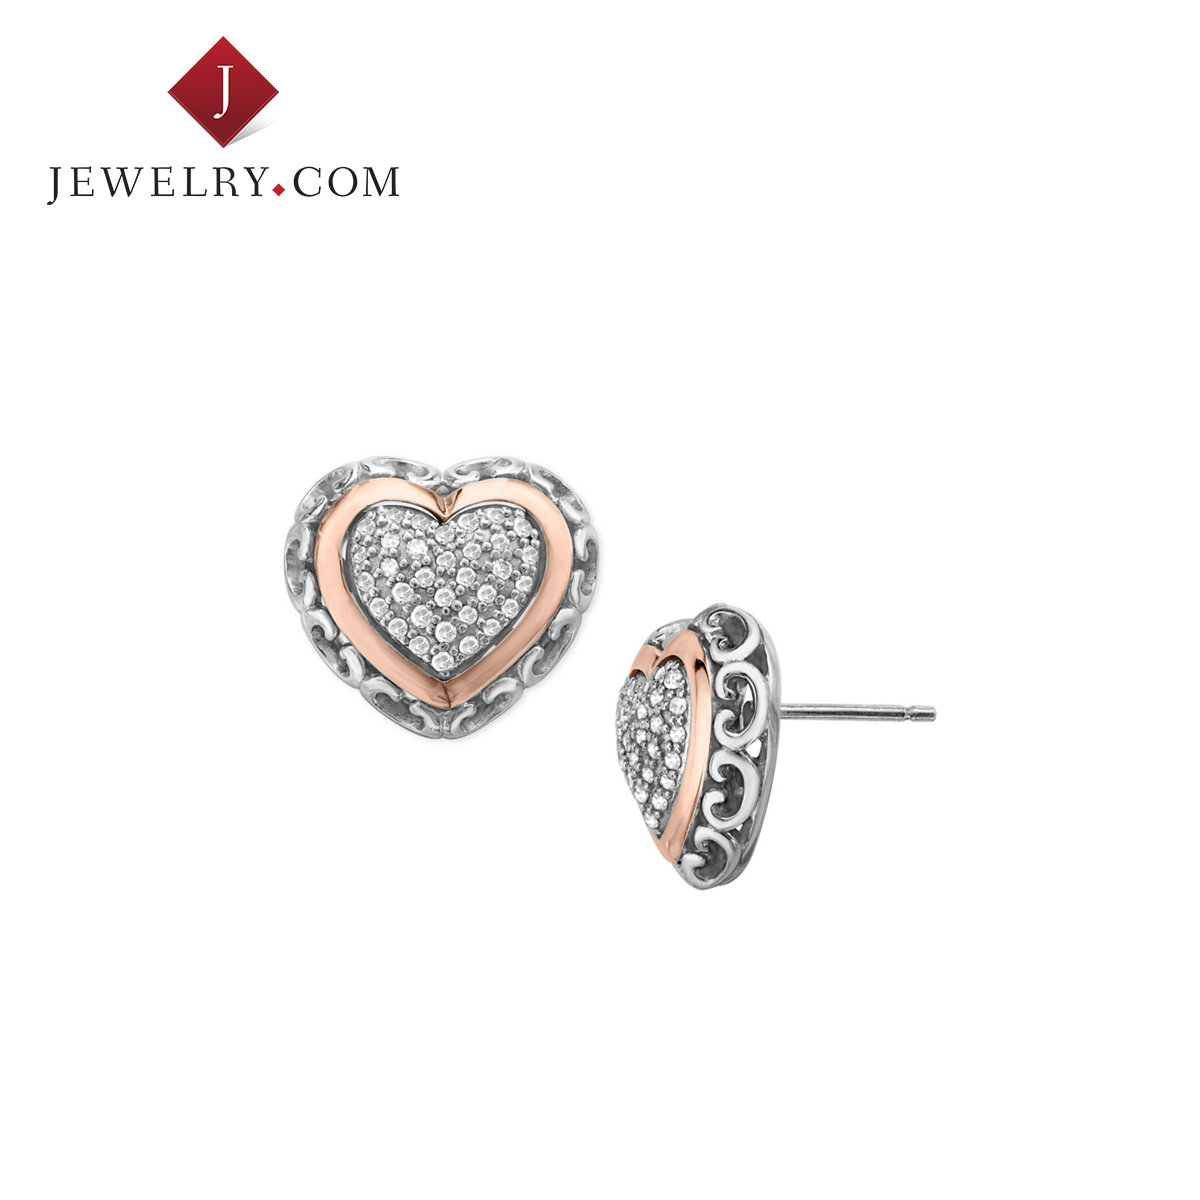 Jewelry.com official silver 925 k rose gold inlay small diamond heart love earrings earrings earrings europe and america